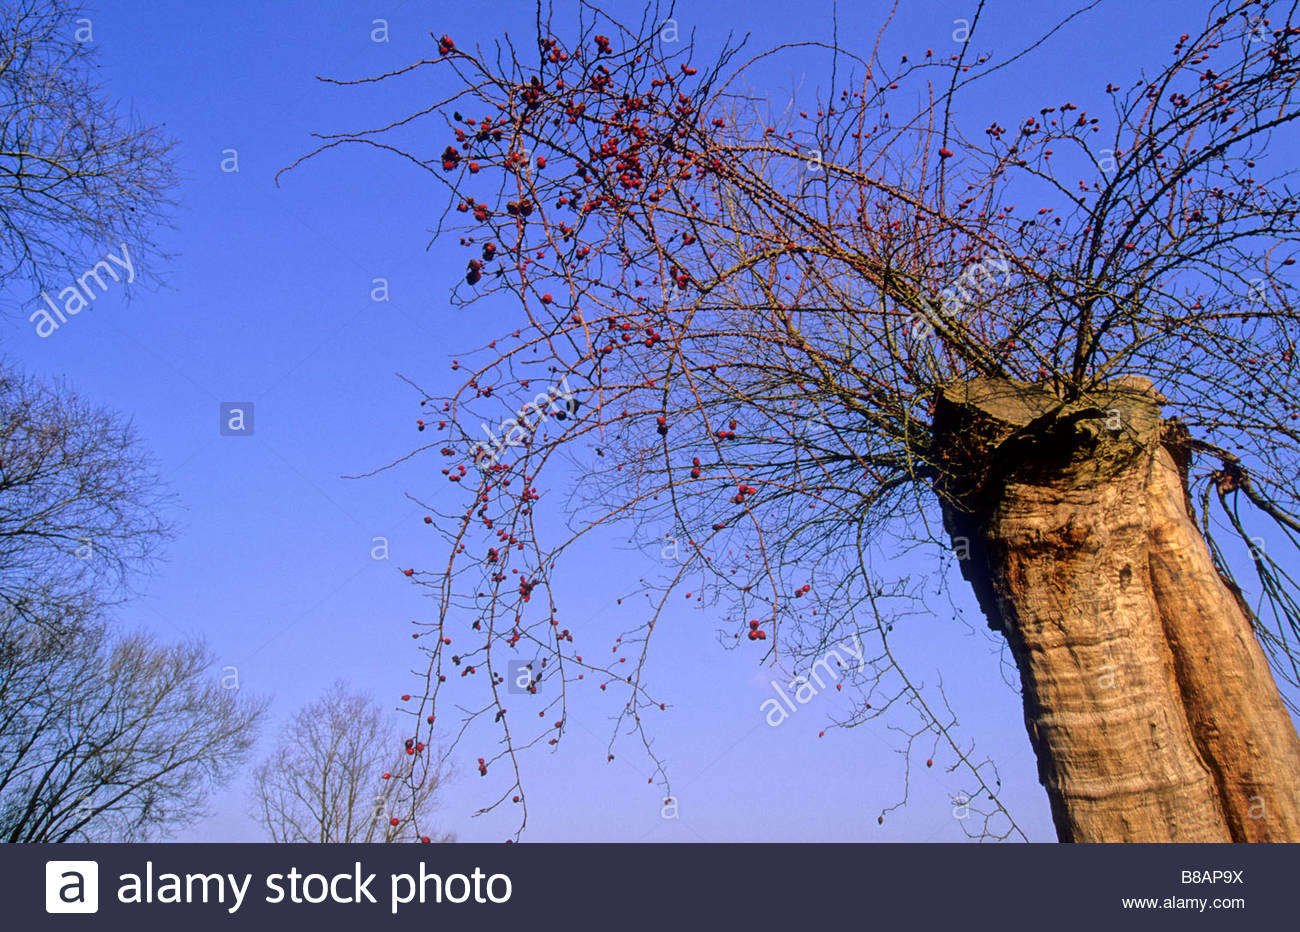 wild rose growing in hollow willow Lenzen Germany Eine Wildrose welche im hohlen Stamm einer abgestorbenen Weide - Stock Image